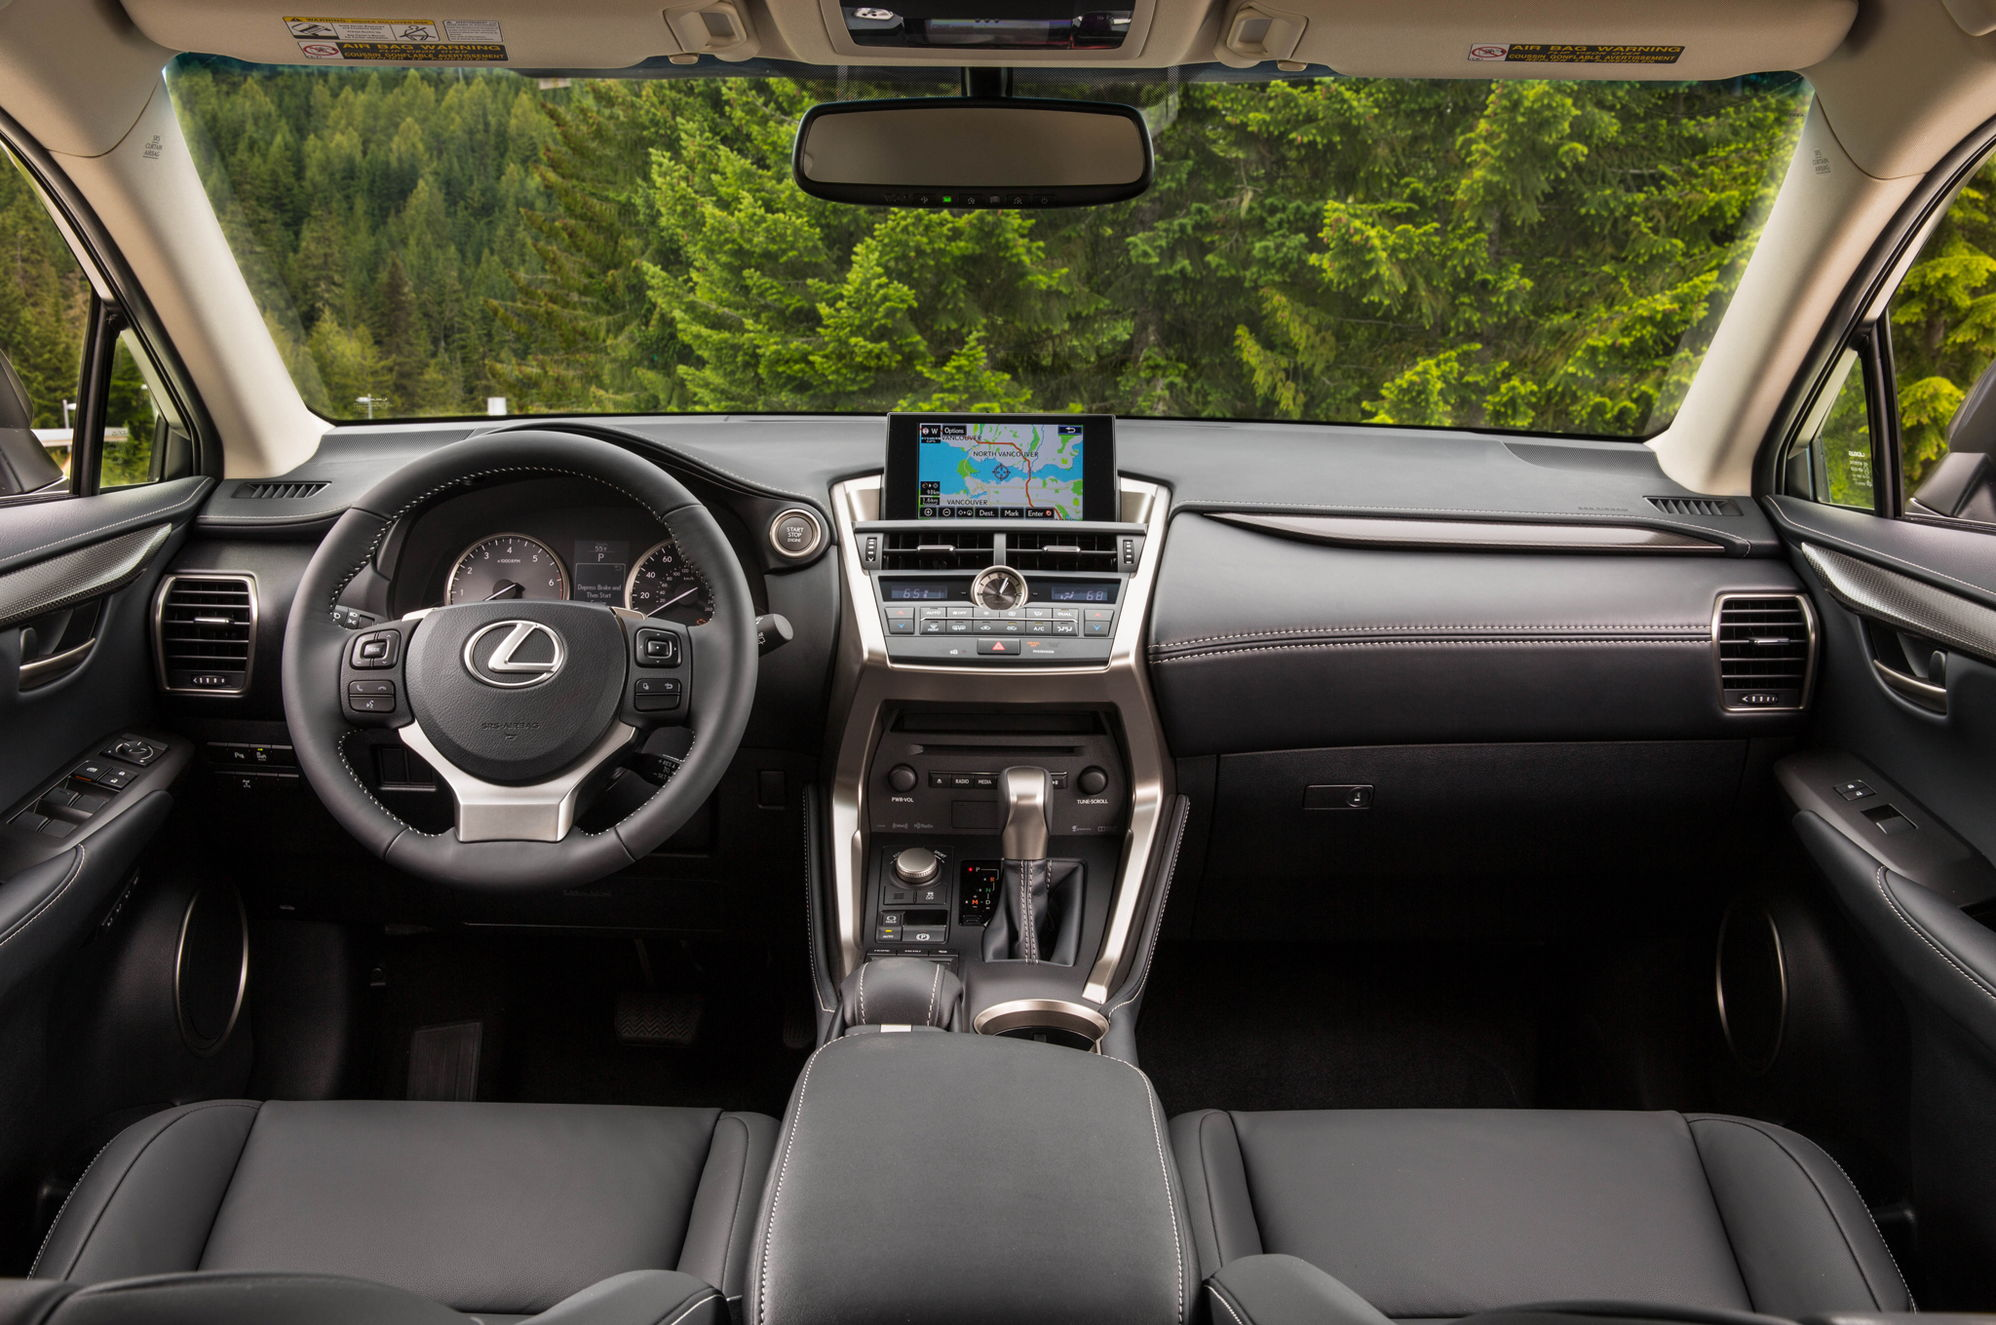 That said given the option between the rdx and nx i d rather stare at the rdx interior all day any day